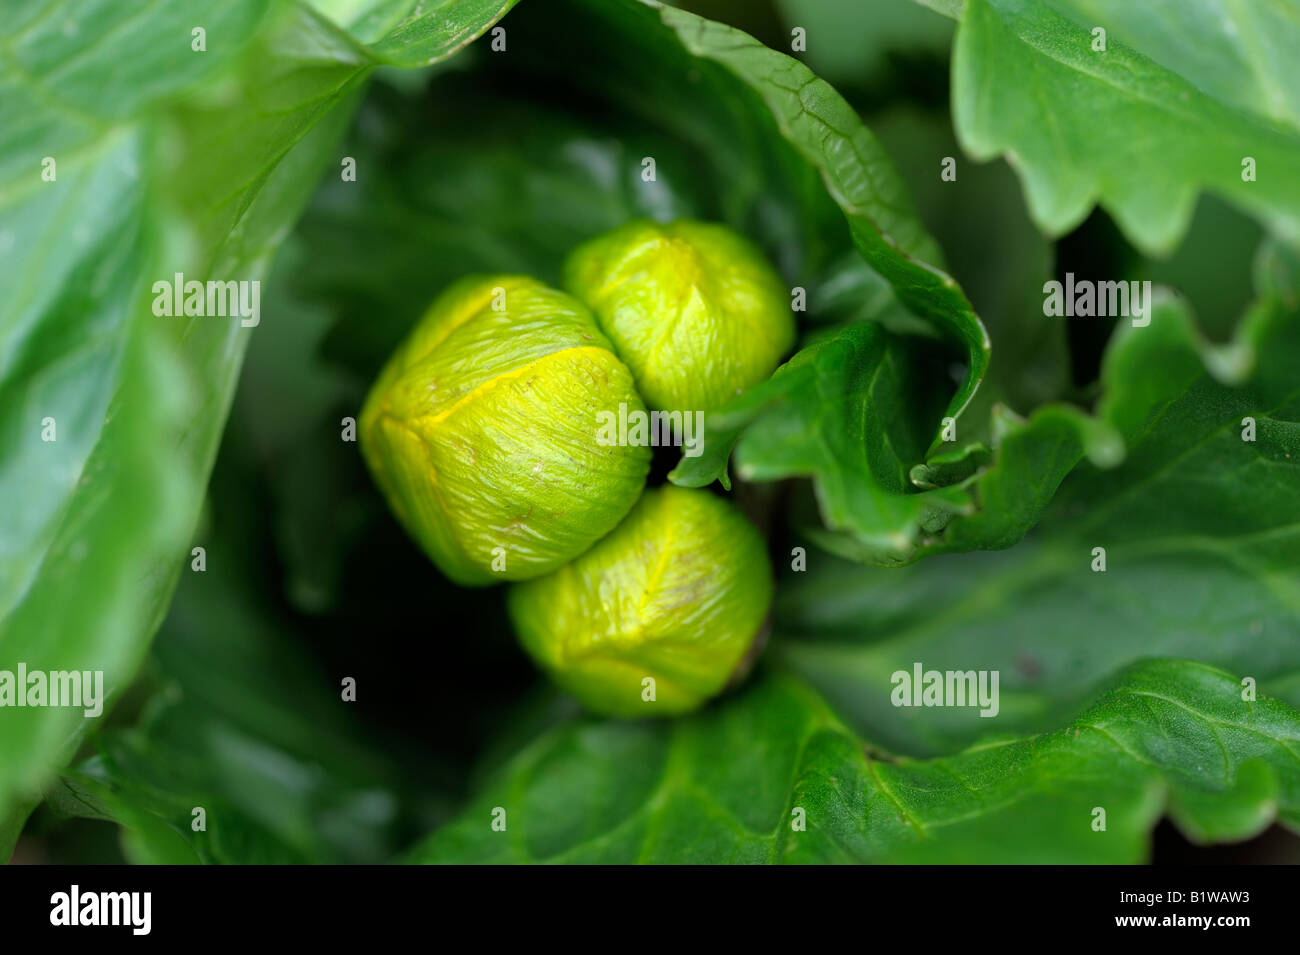 Cabbage Like Stock Photos Amp Cabbage Like Stock Images Alamy